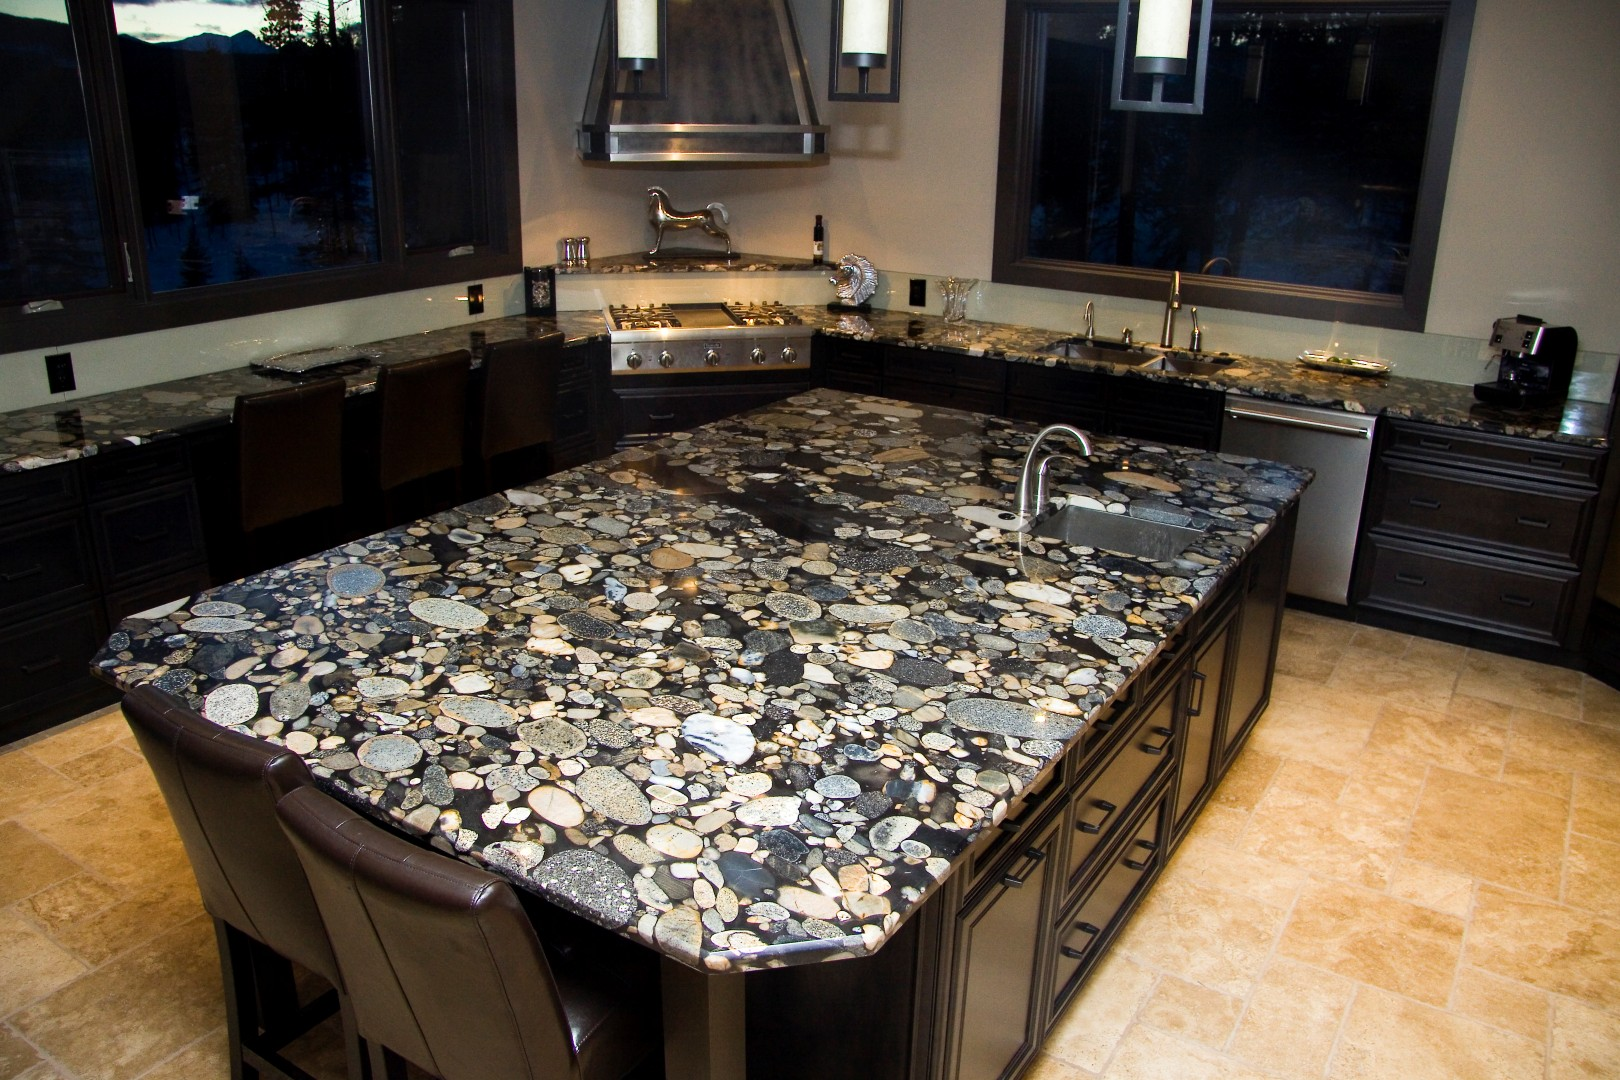 Granite Countertops Lowes : -Granite-countertops-lowes.axd-to-energize-the-granite-counter-tops ...